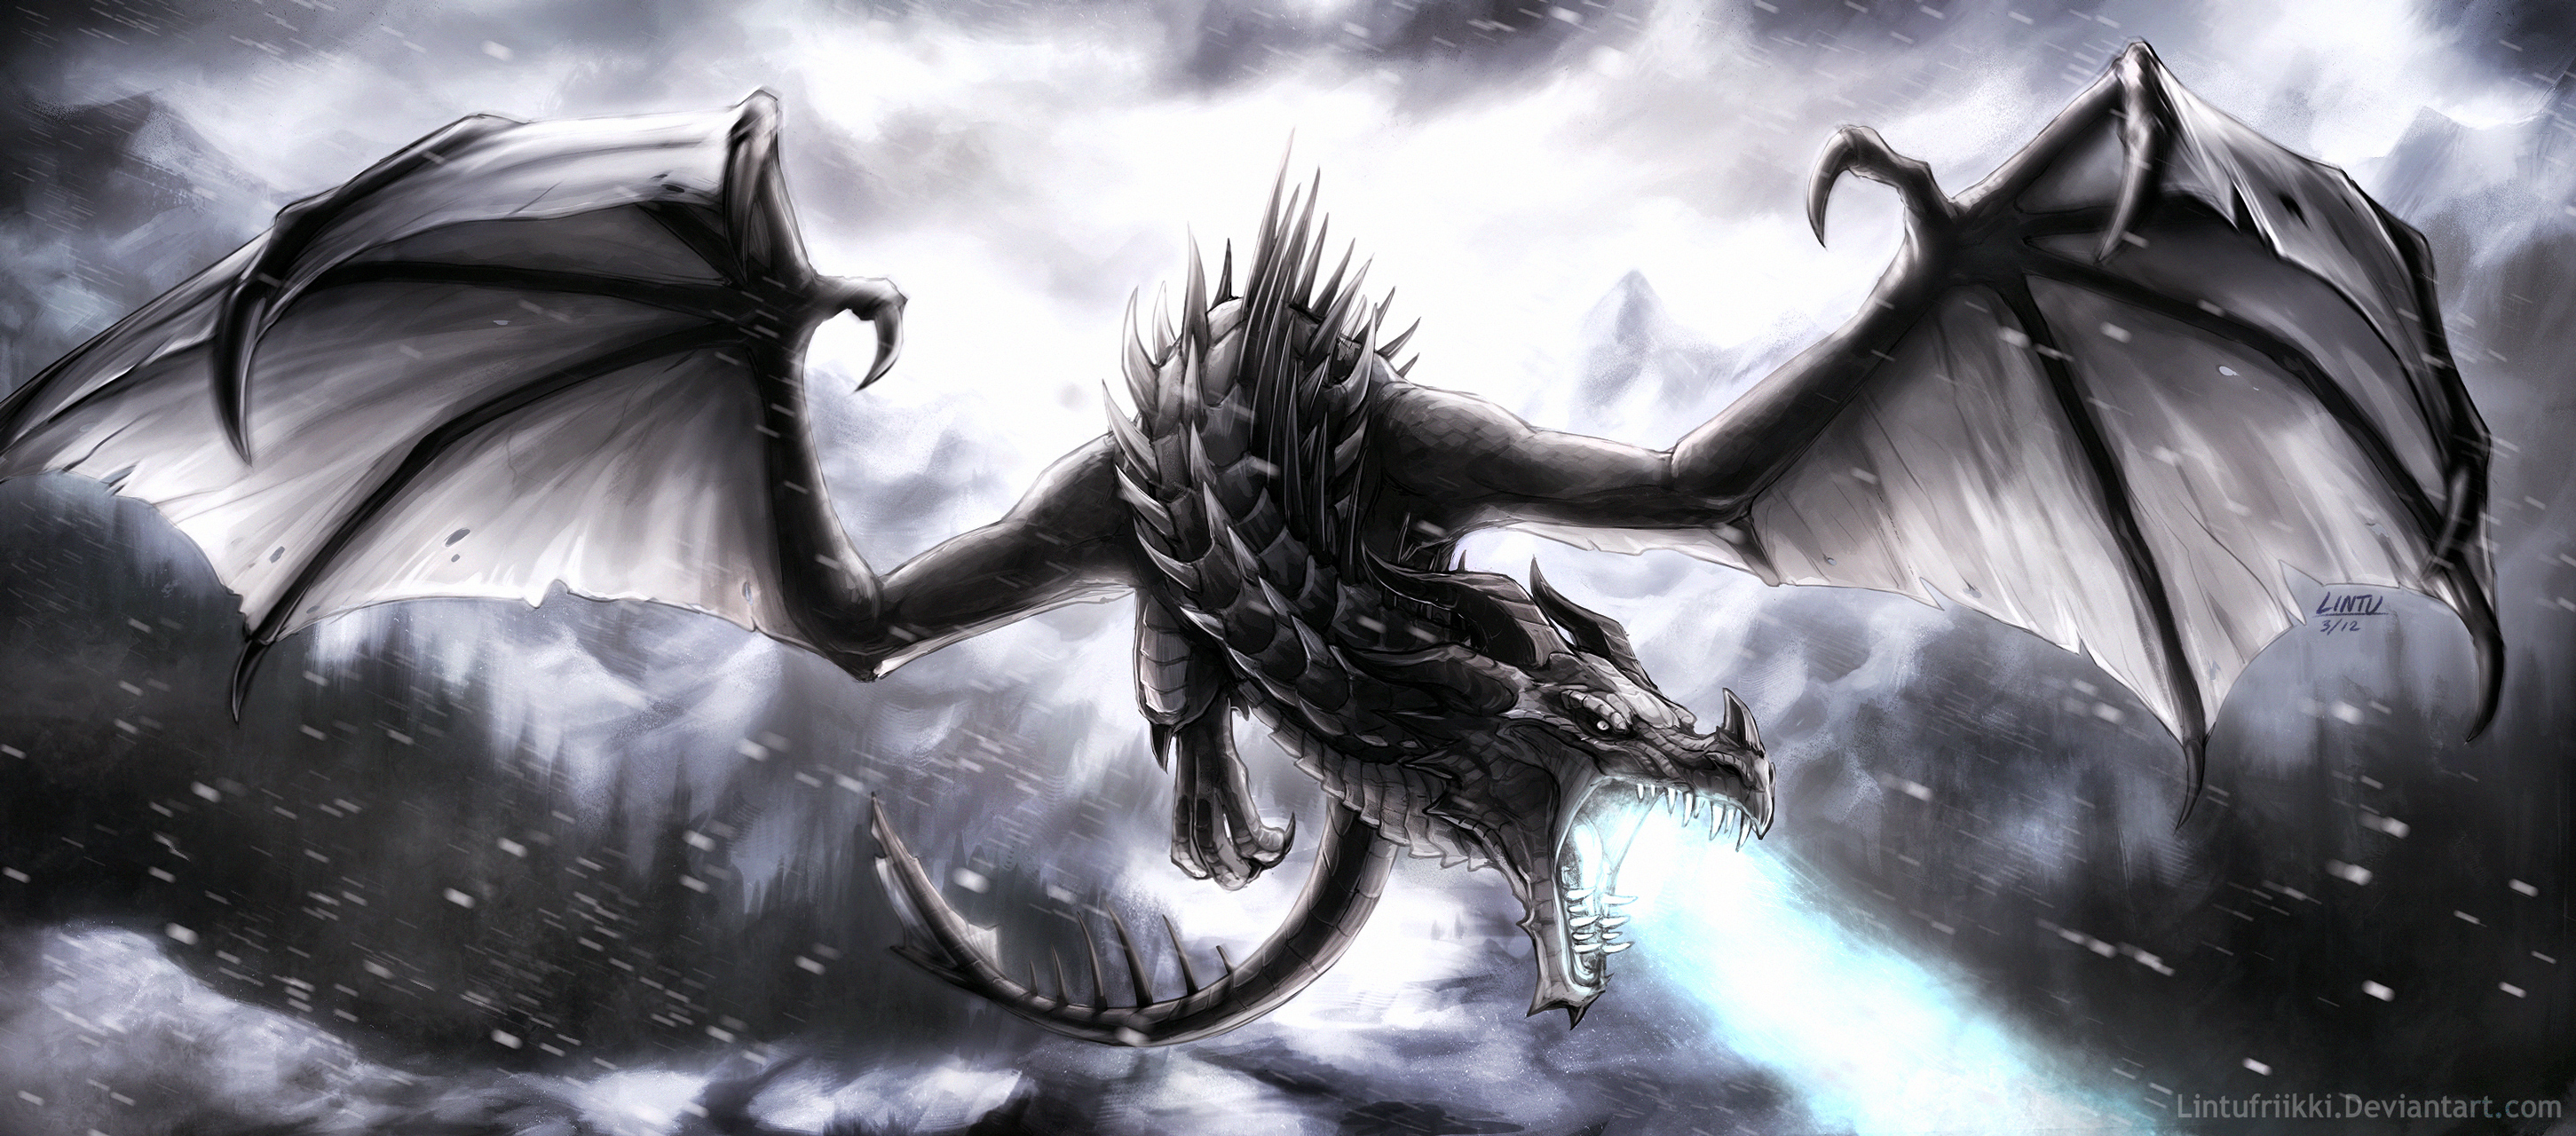 Frost dragon by Lintufriikki on DeviantArt